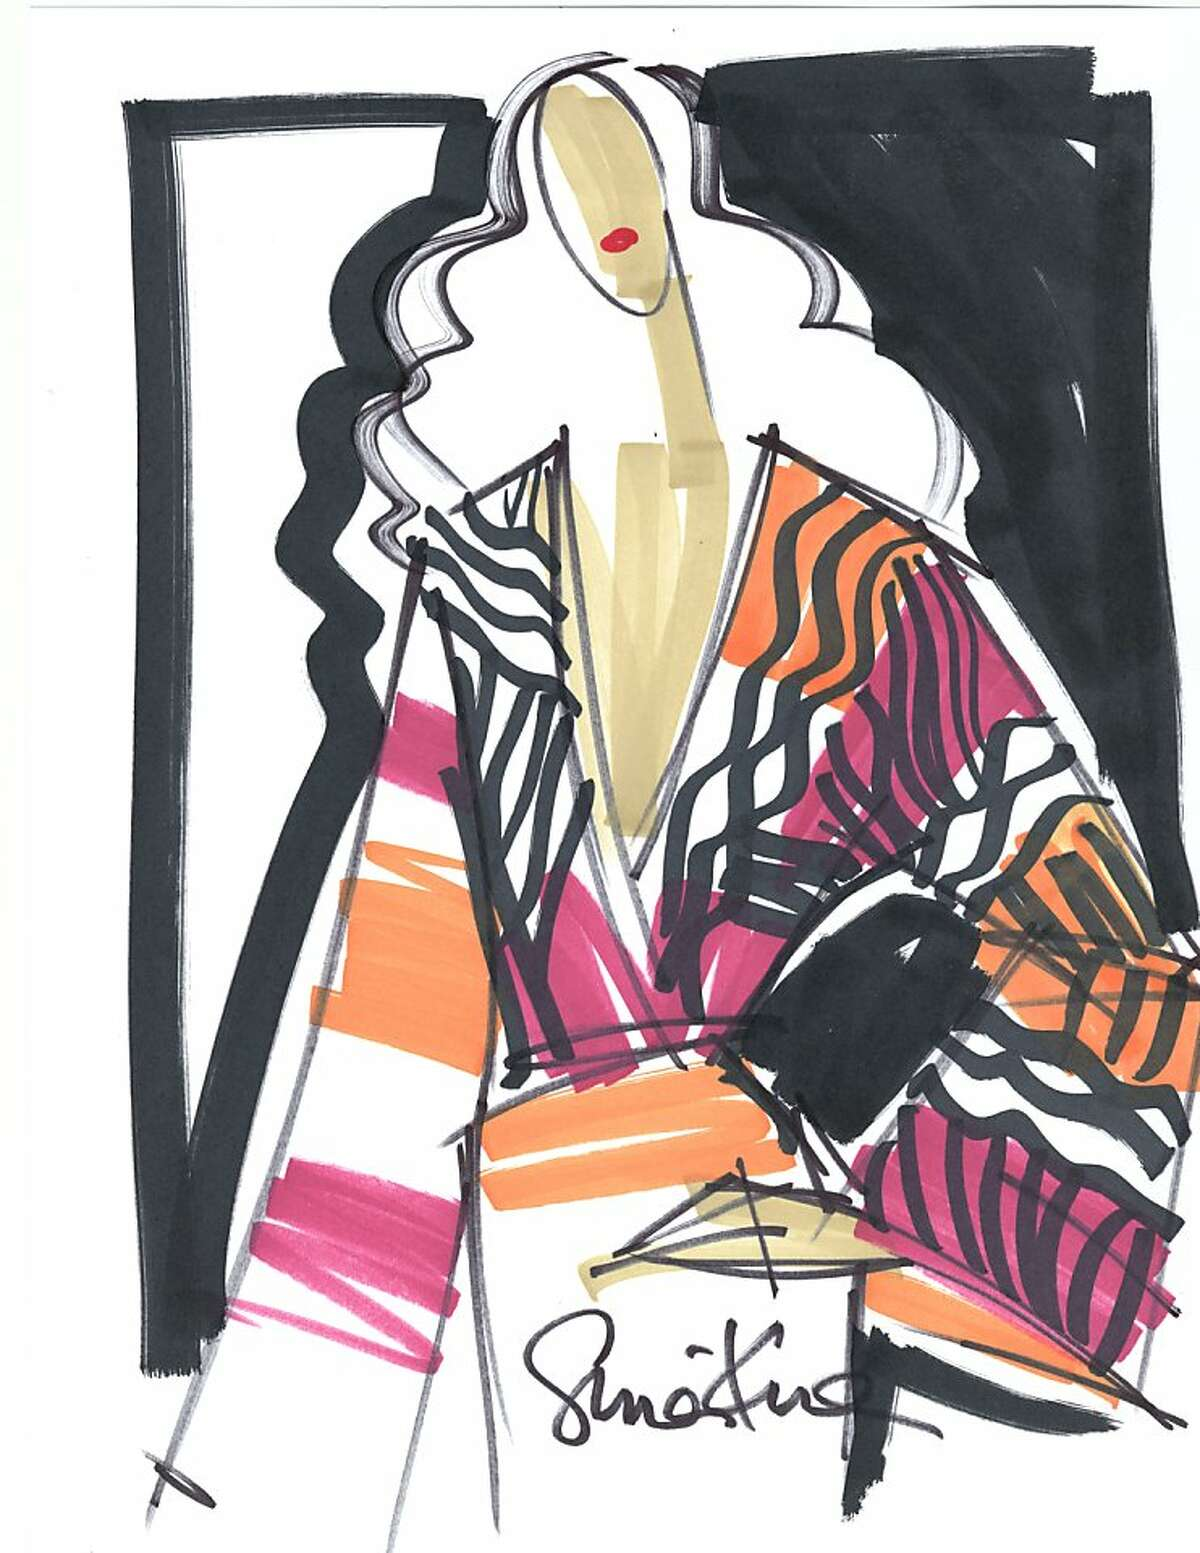 Beloved British brand Issa will do a special collection for Banana Republic. Here is a sketch of a kimono.